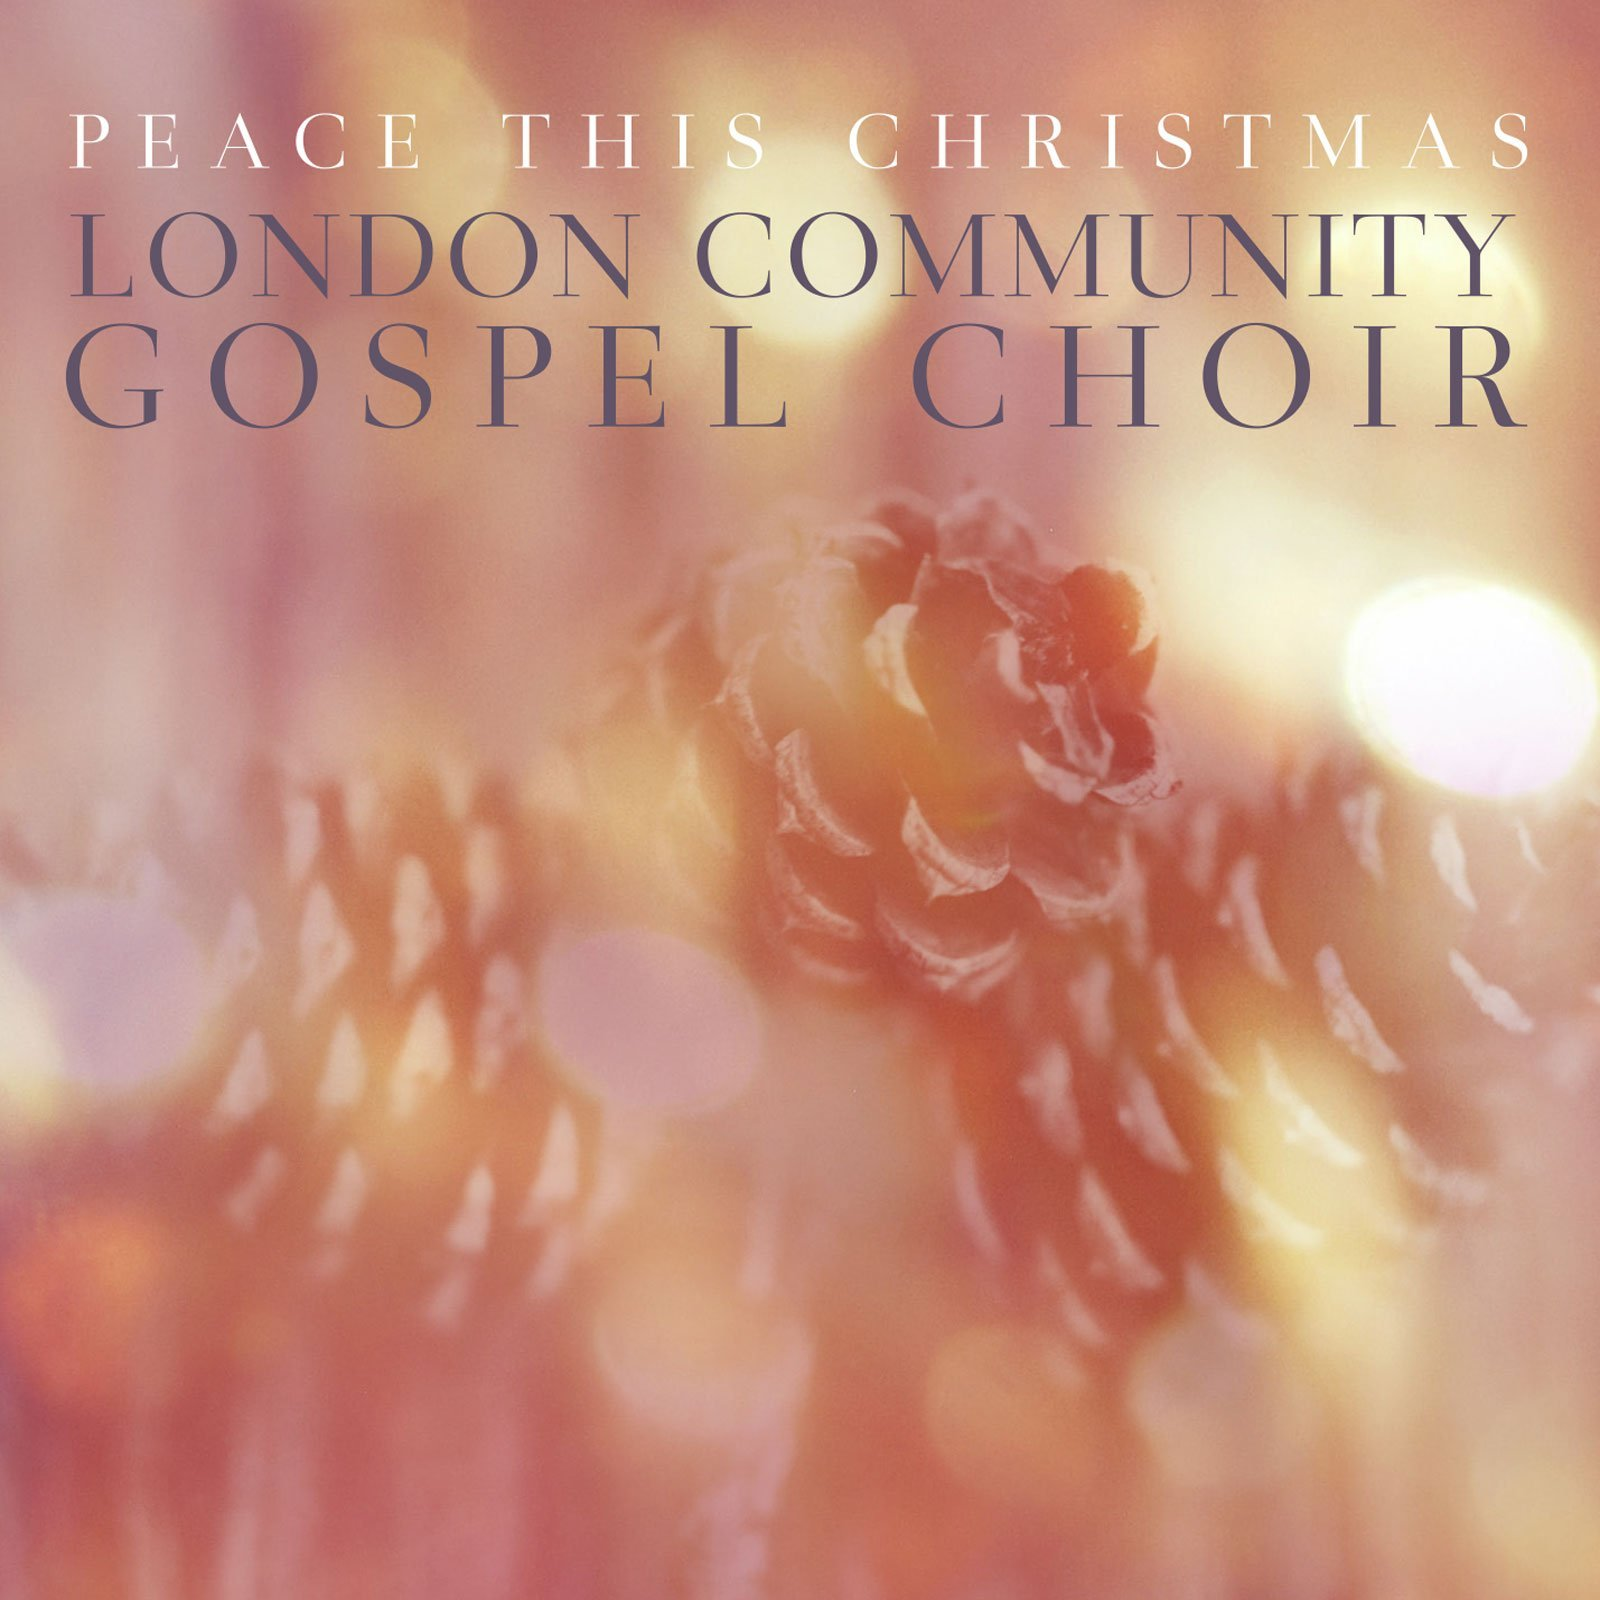 LCGC_Peace_This_Christmas_Cover_1600x1600